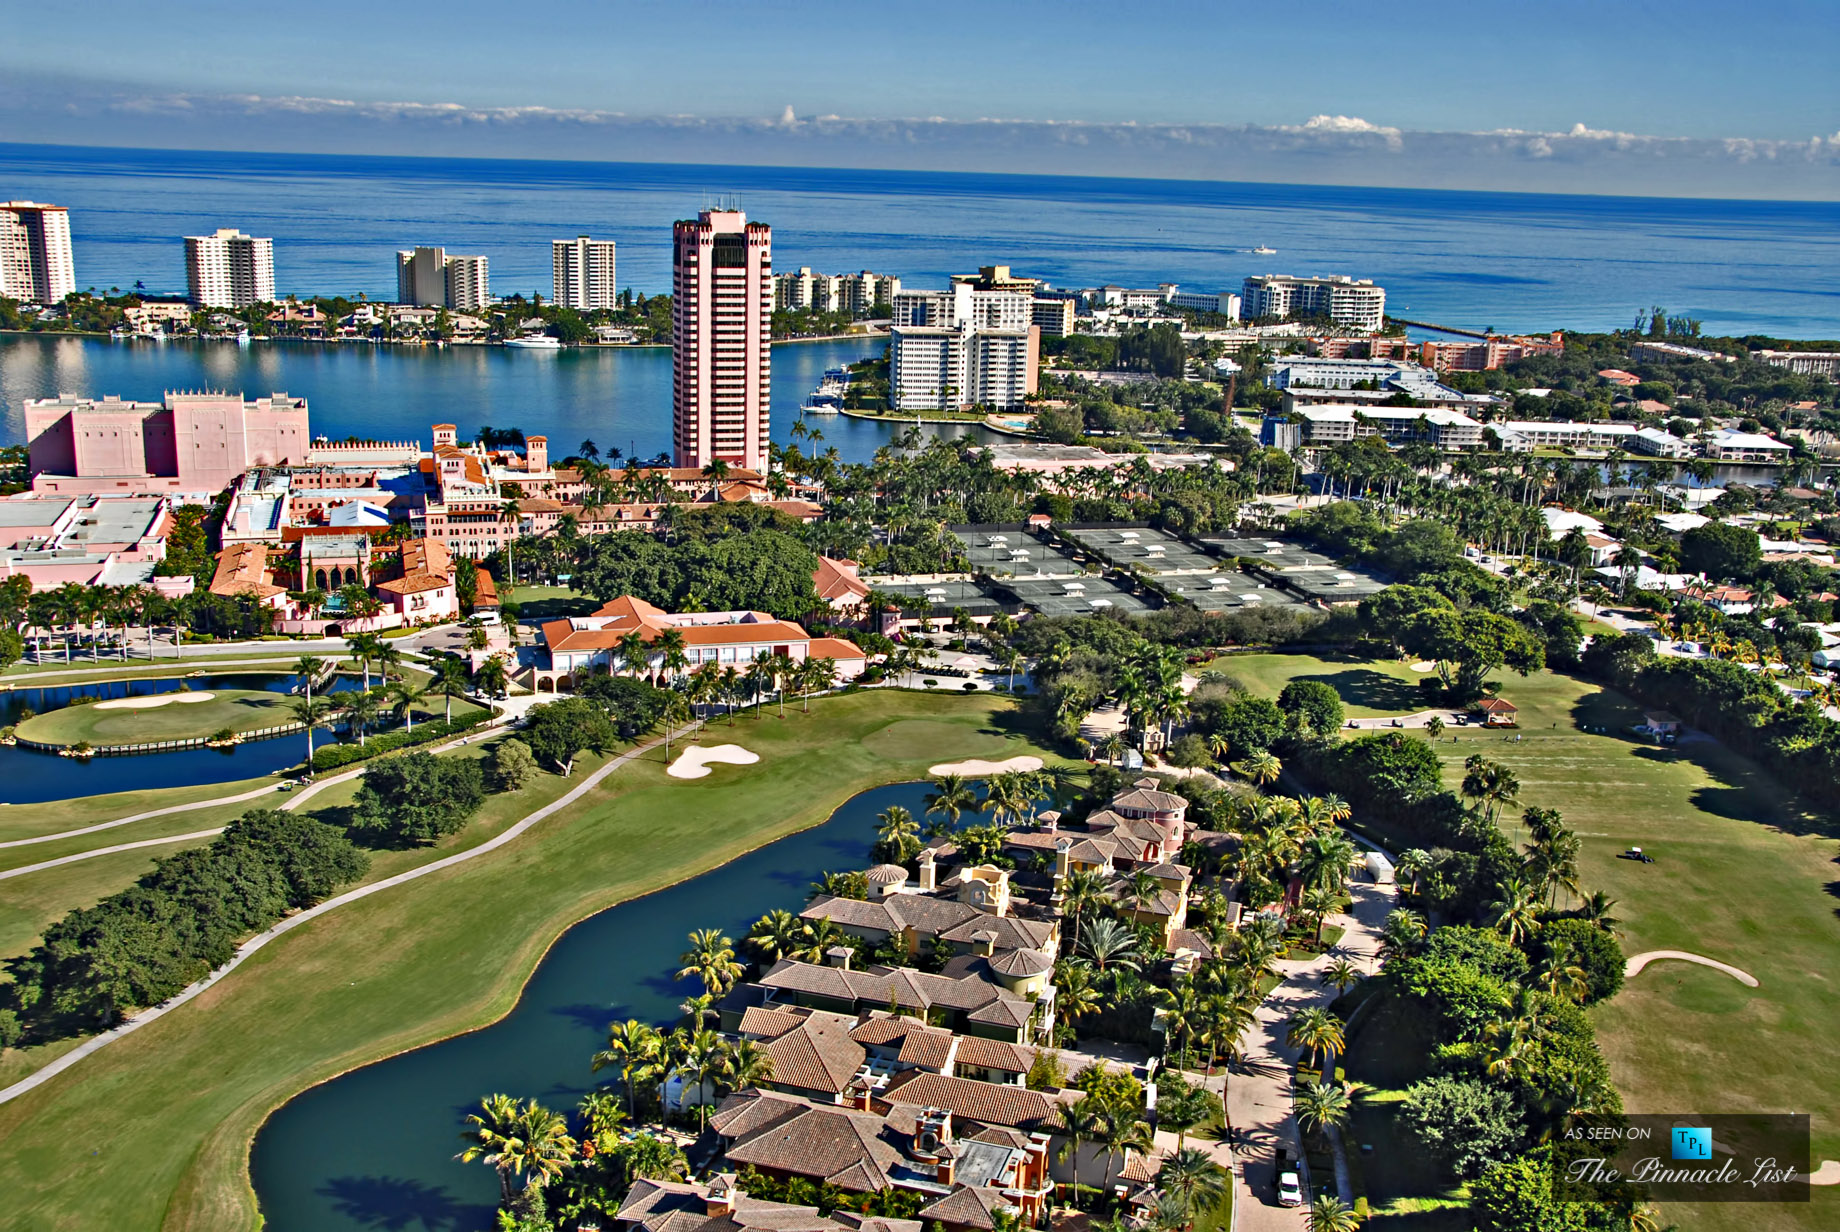 Boca Raton - Top 5 Locations For a Luxury Second Home in Florida